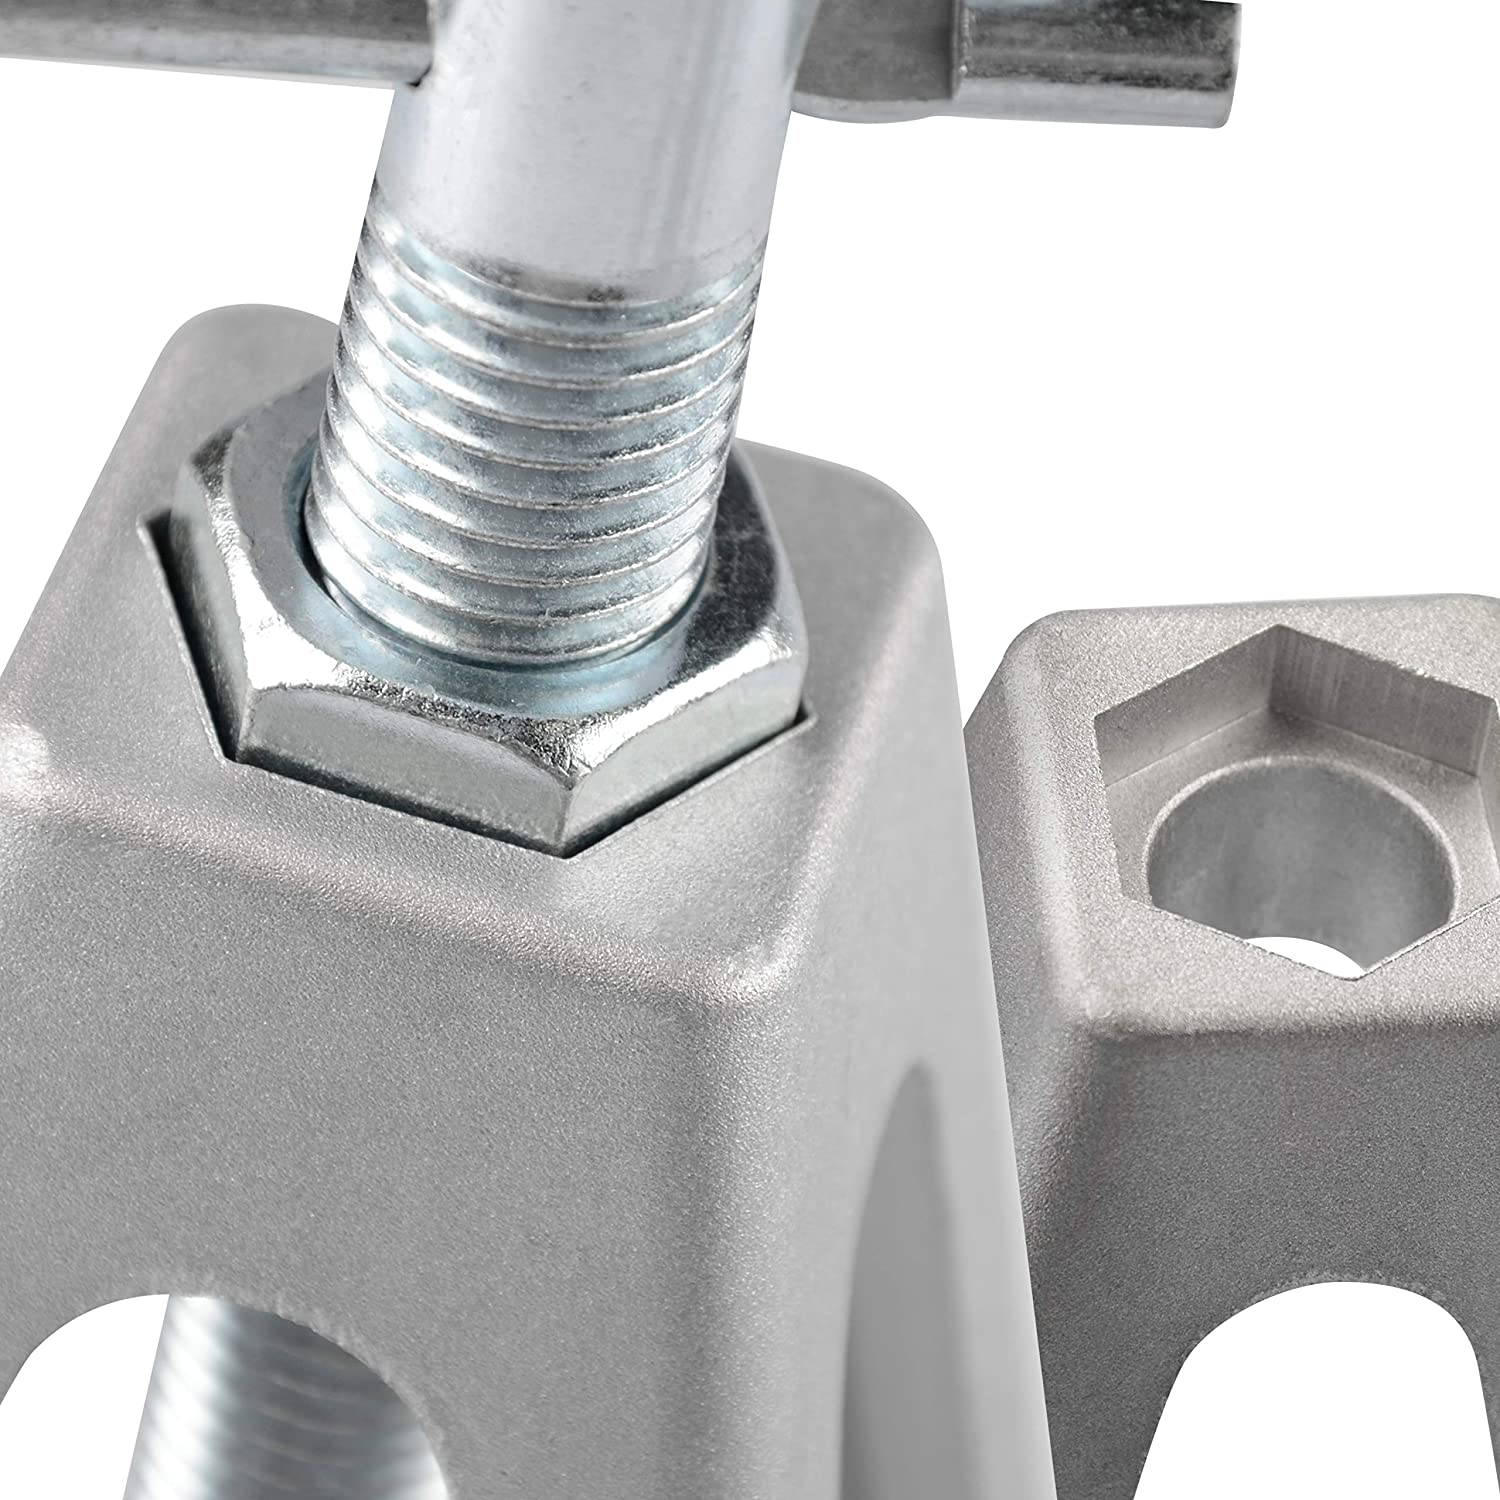 Adjustable from 11.5 inches to 17.5 inches RVGUARD RV//Trailer Stablizing Jacks 4 Packs